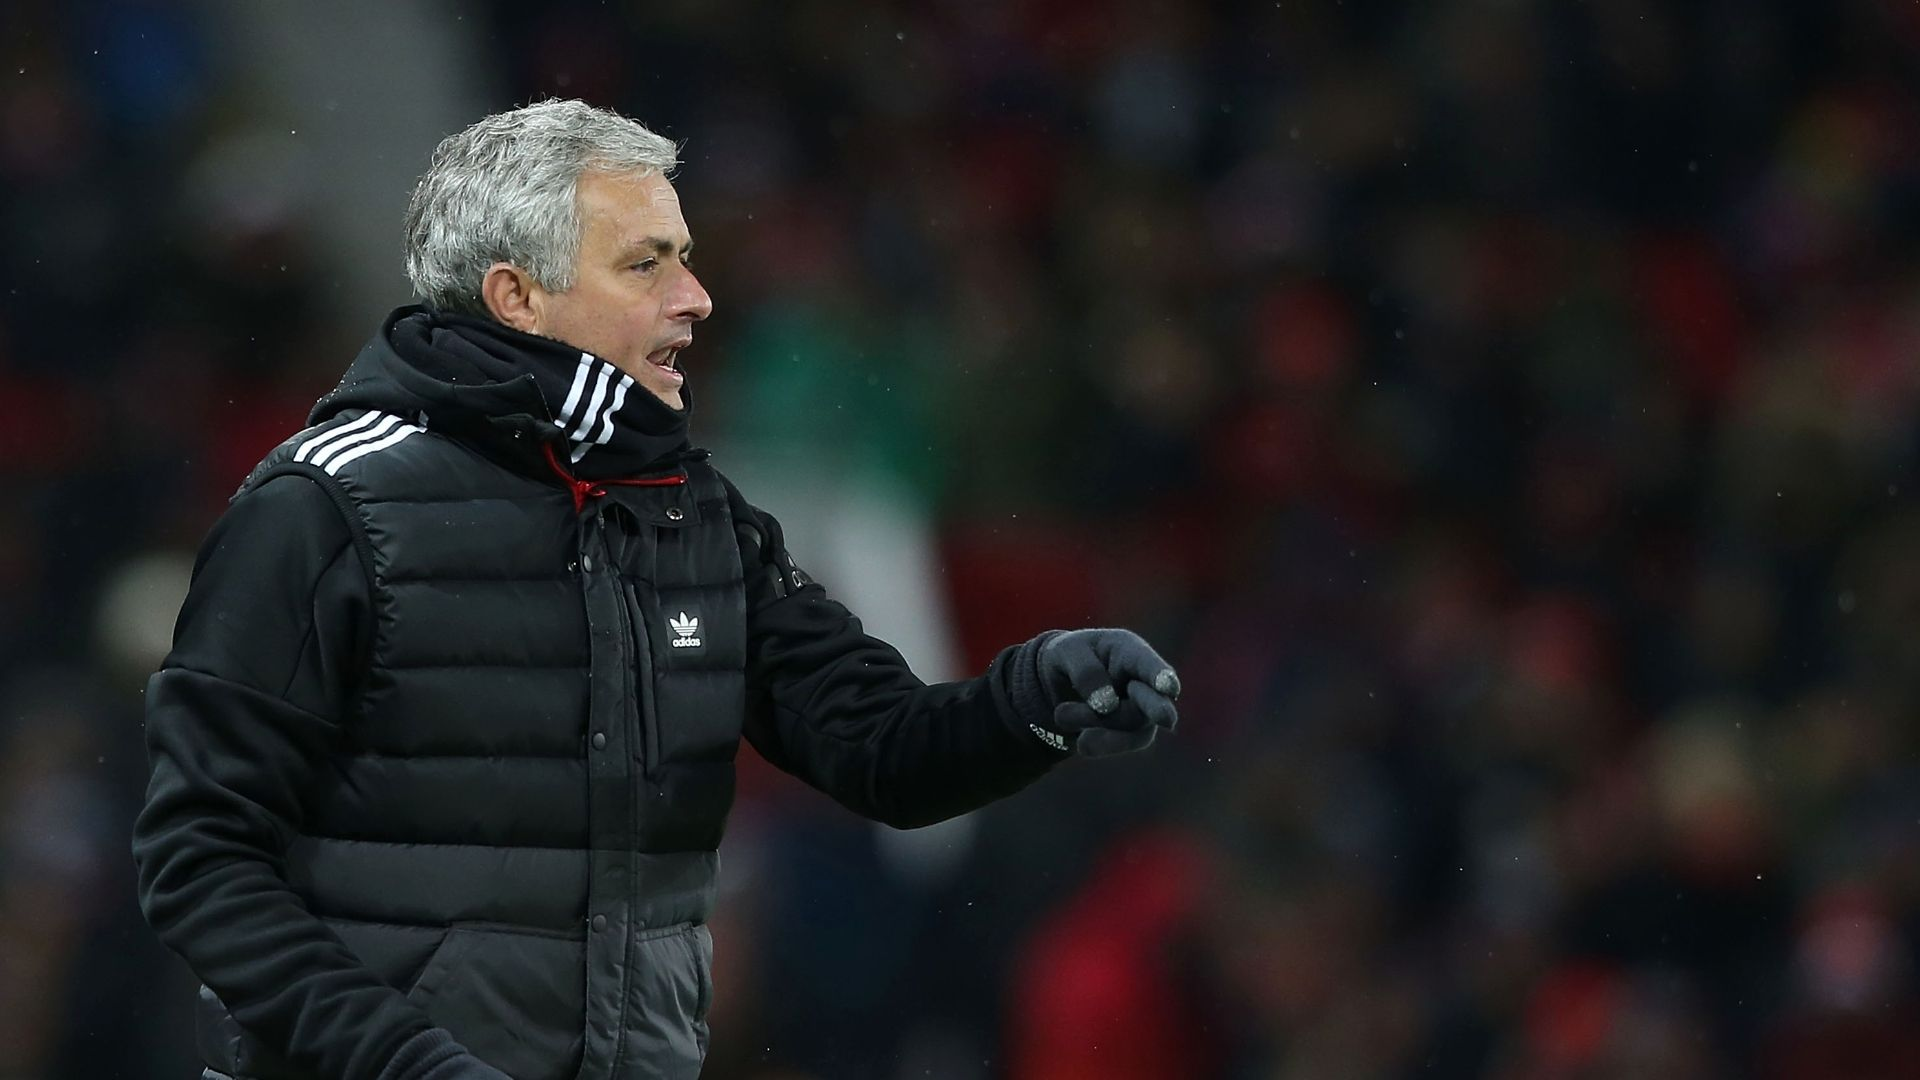 Transfer Talk: Mou row sparks Shaw exit